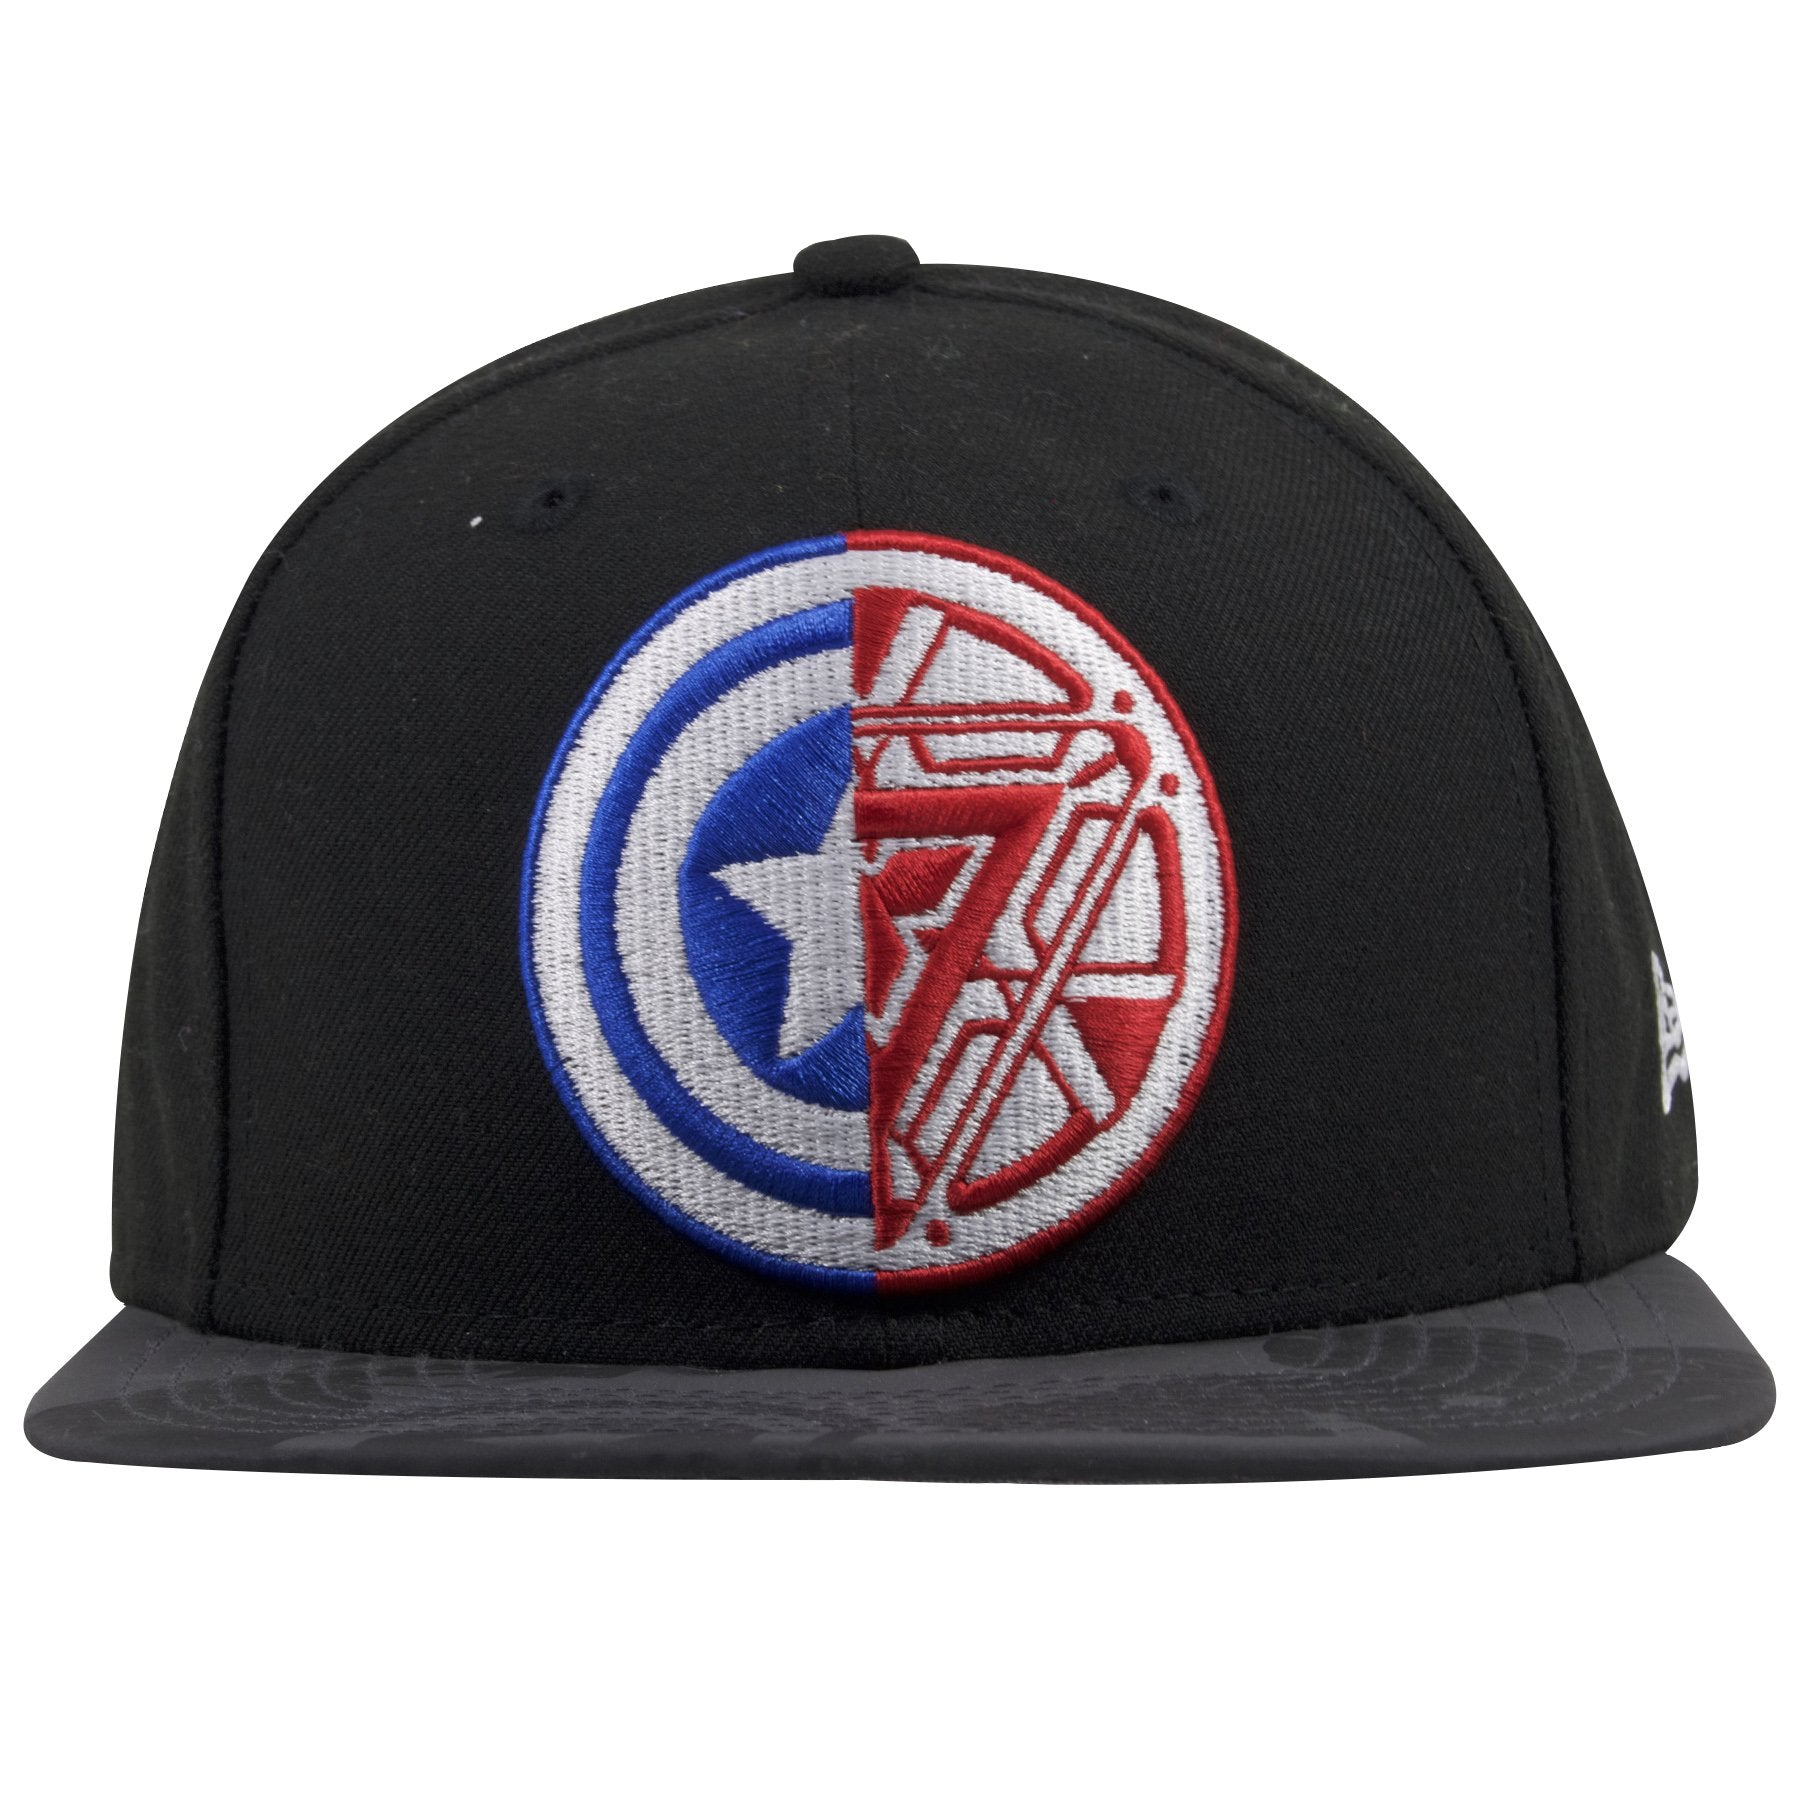 4015656ac Marvel Comics | Shop Marvel Hats, Clothing and More Here! – Cap Swag